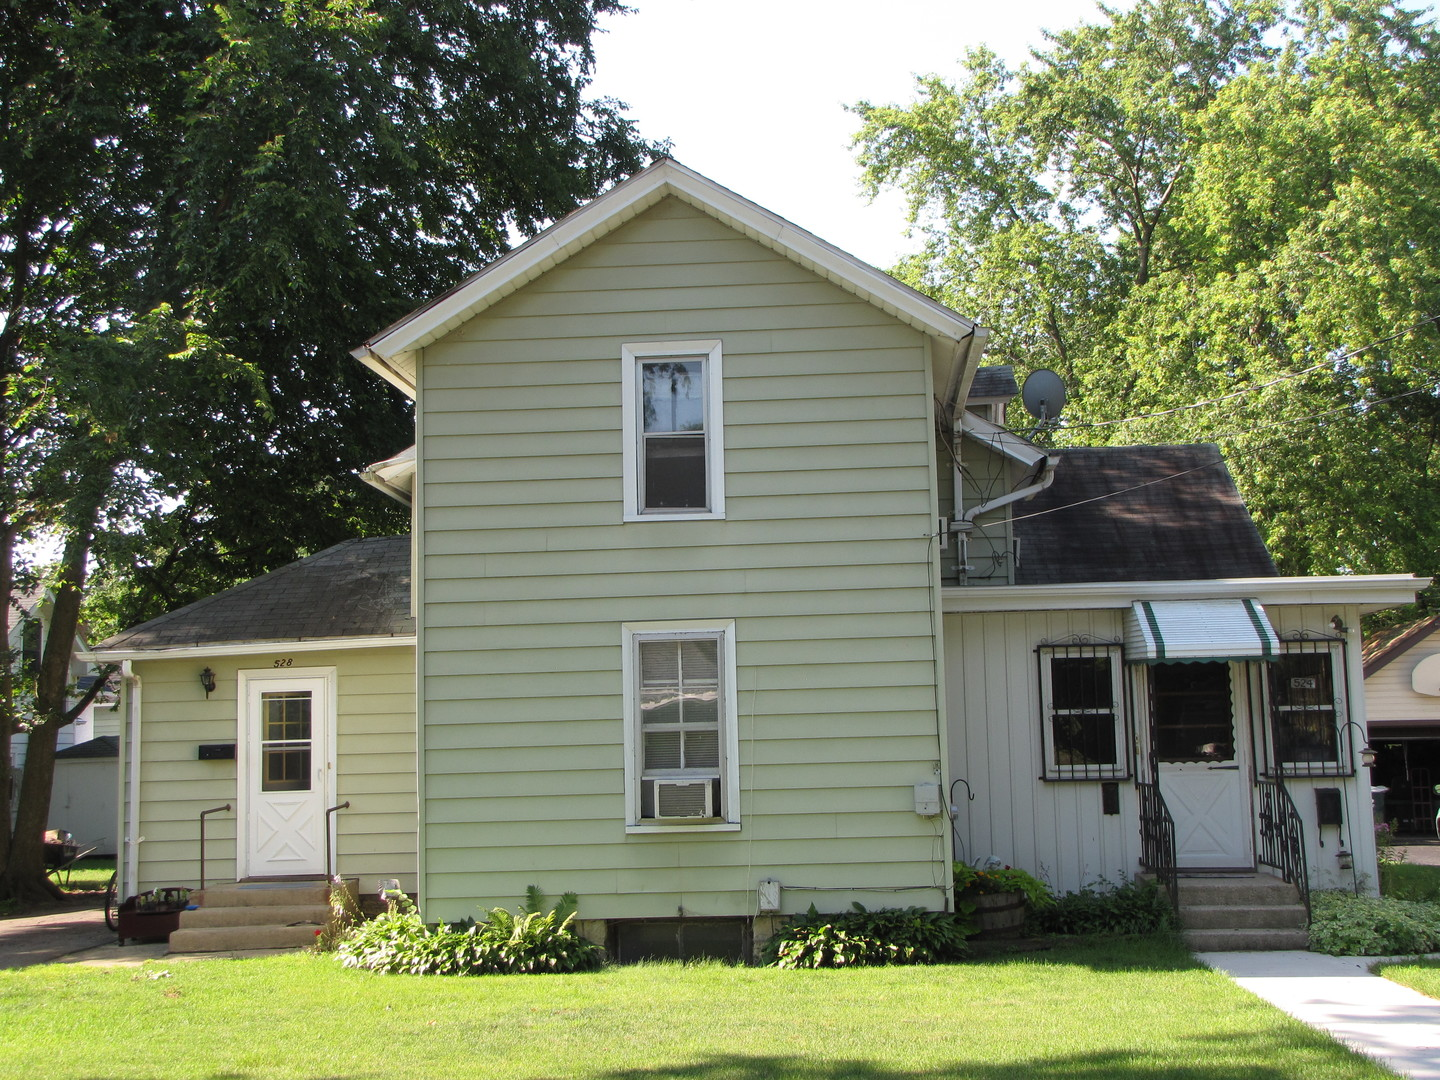 524-528 SPRING Street, Batavia in Kane County, IL 60510 Home for Sale